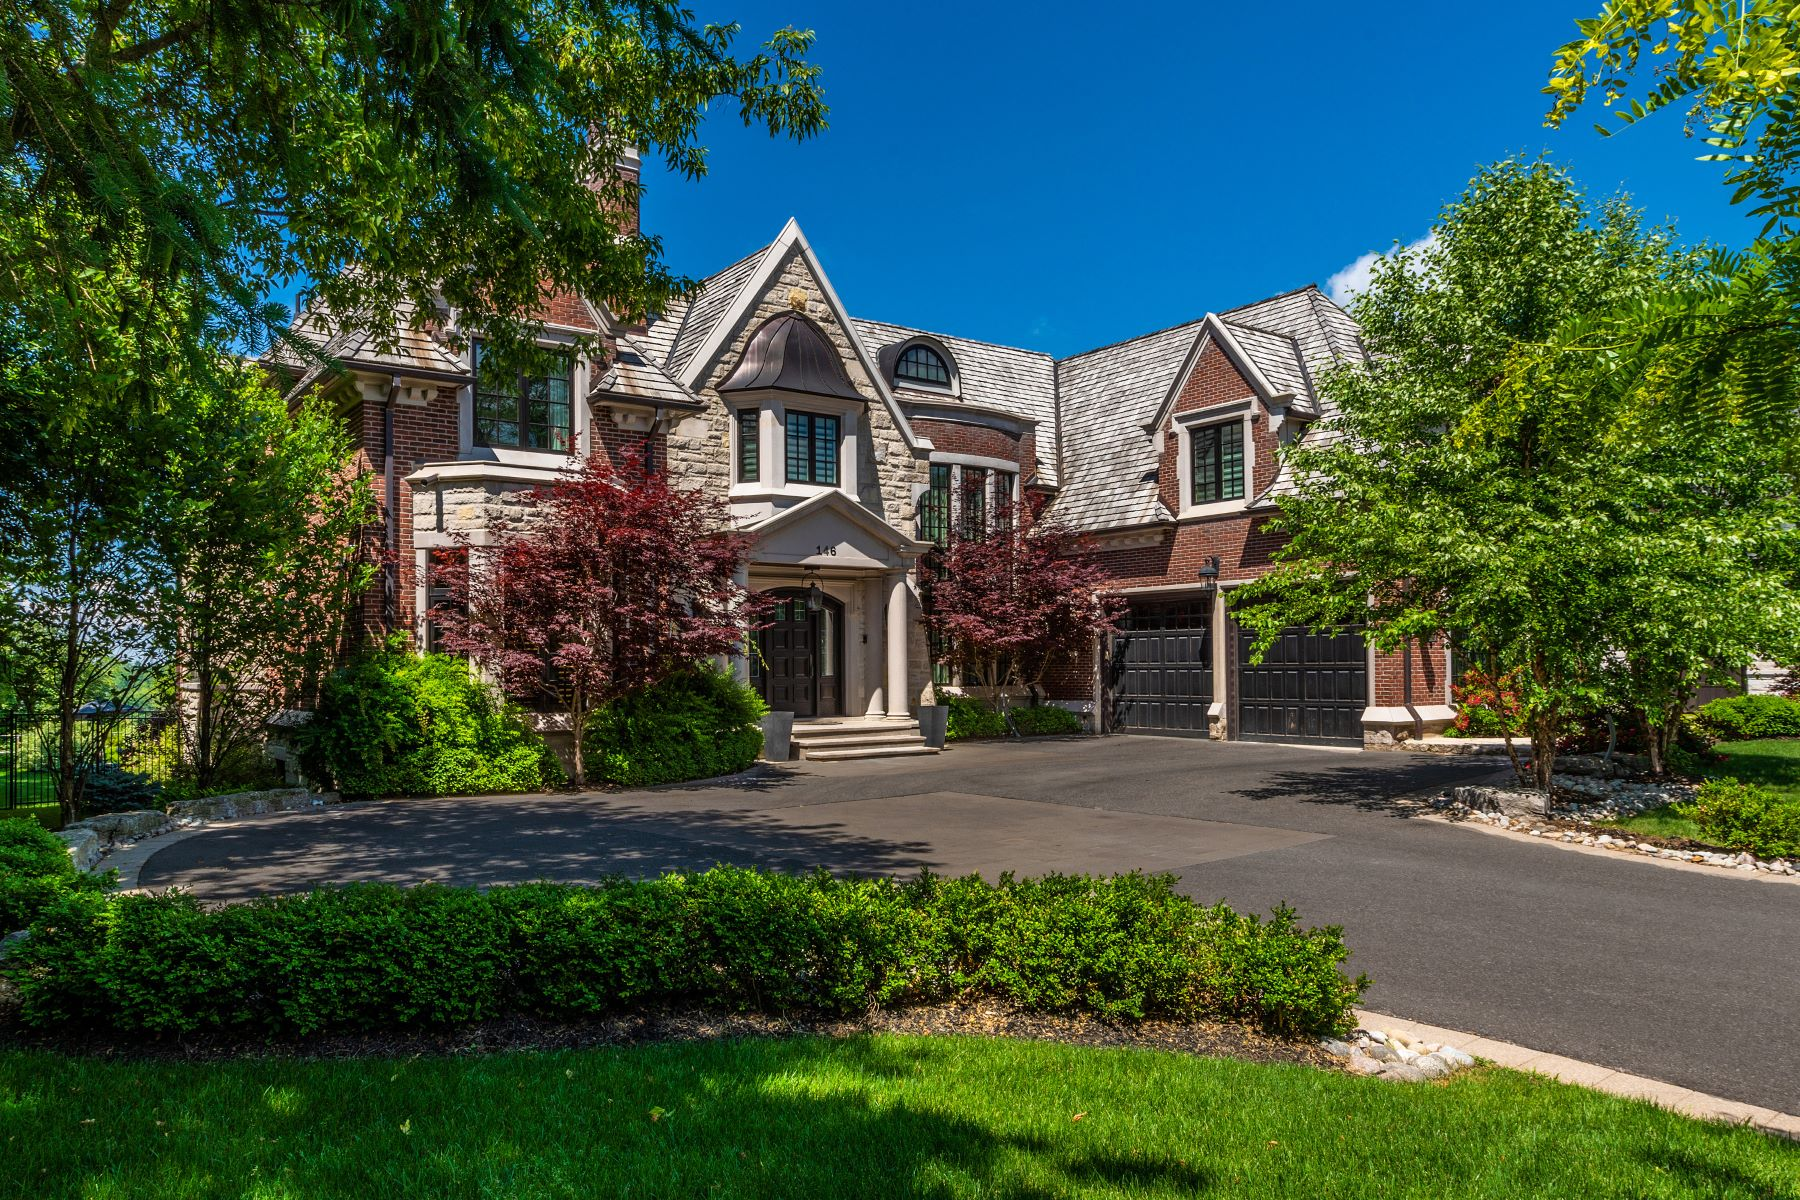 Single Family Homes for Sale at Traditional Elegance 146 Waymar Heights Blvd Vaughan, Ontario L4L 2P7 Canada